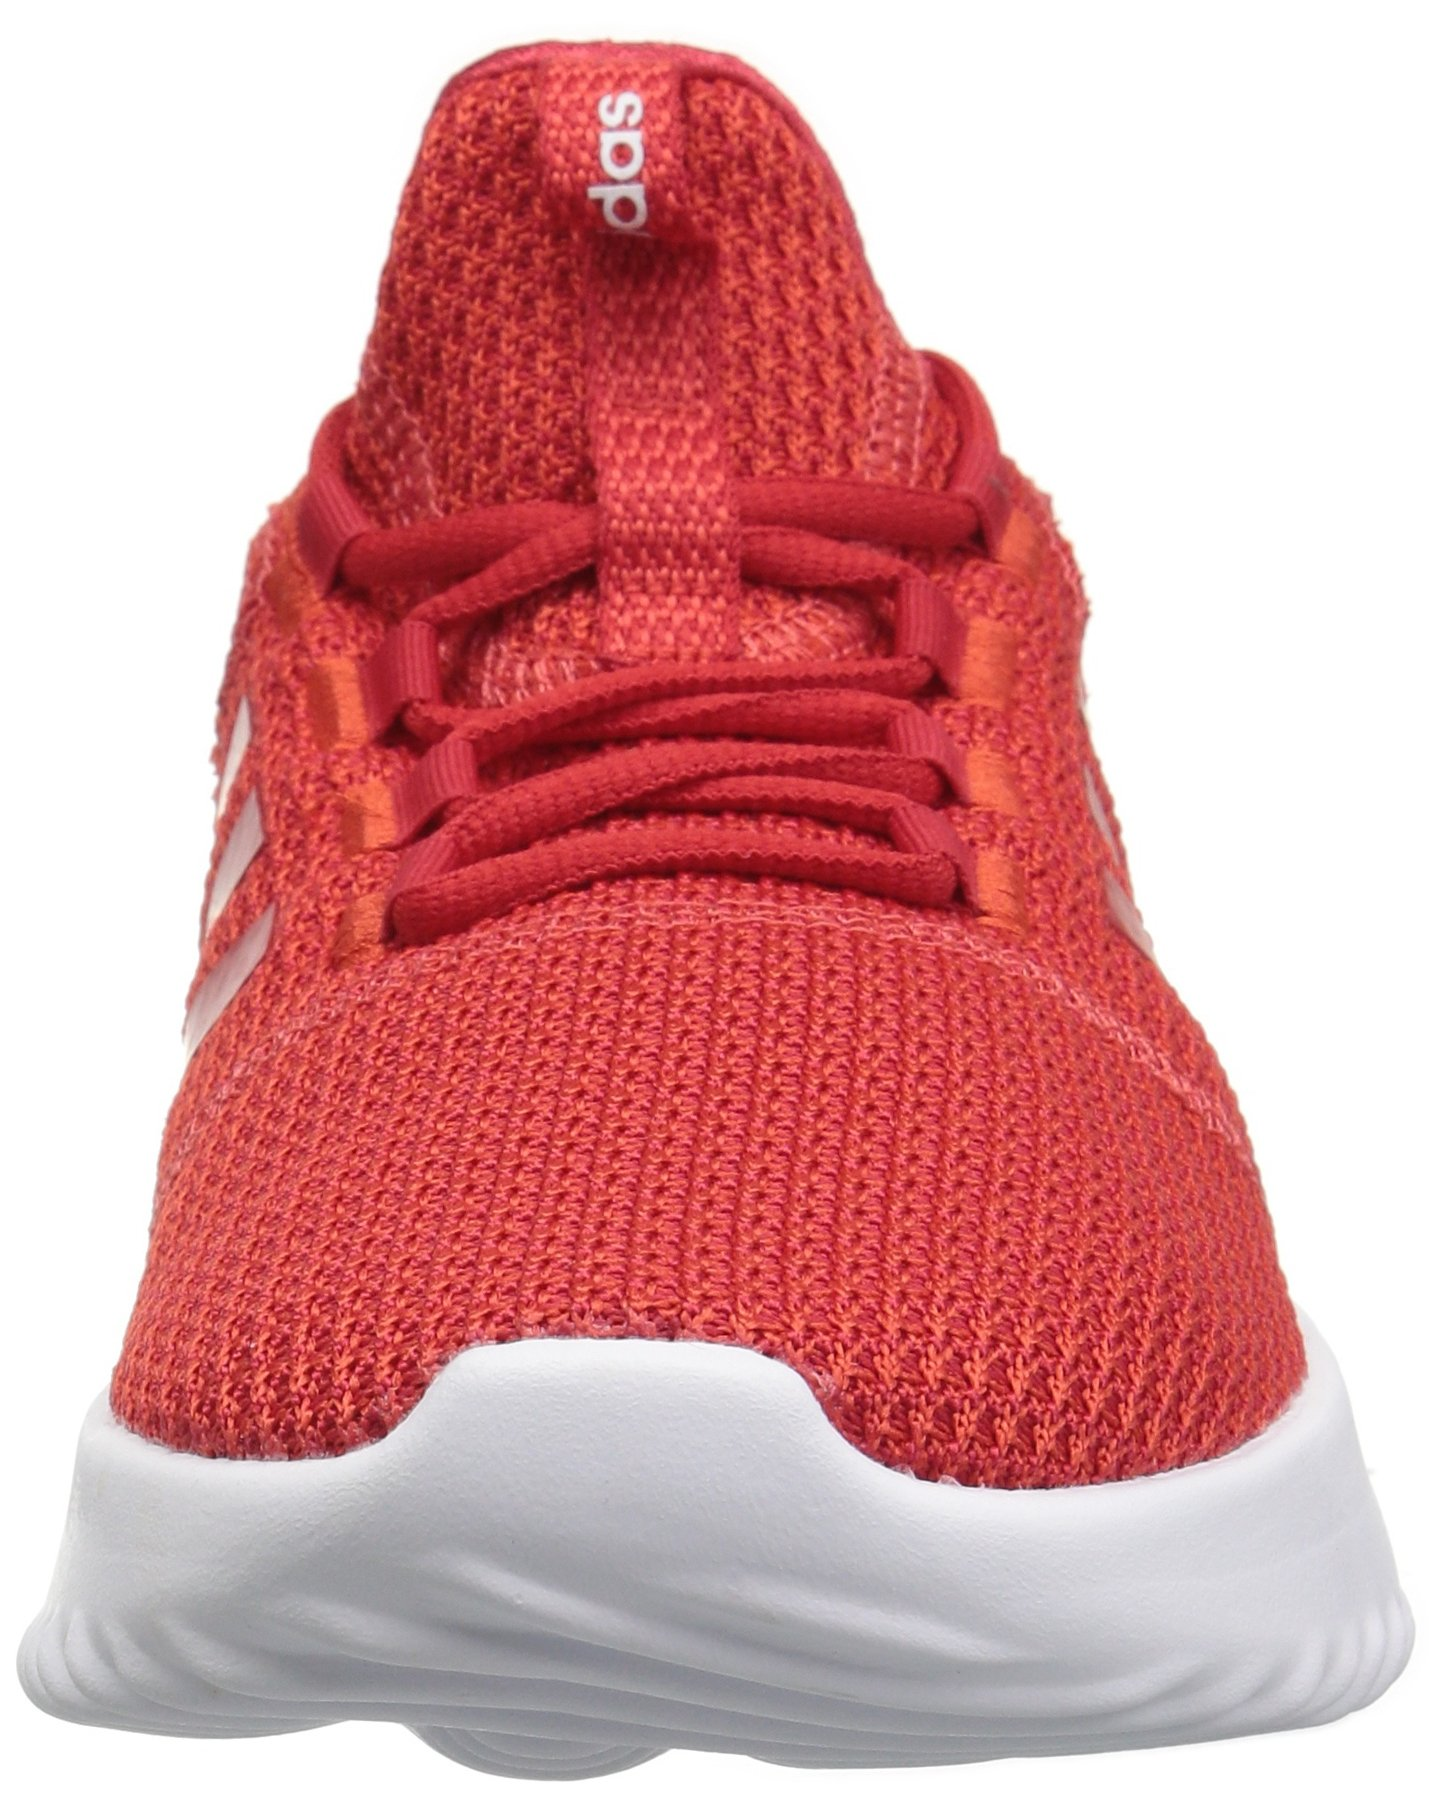 adidas Kids' Cloudfoam Ultimate Running Shoe, Red/Scarlet/Black, 1 M US Little Kid by adidas (Image #4)